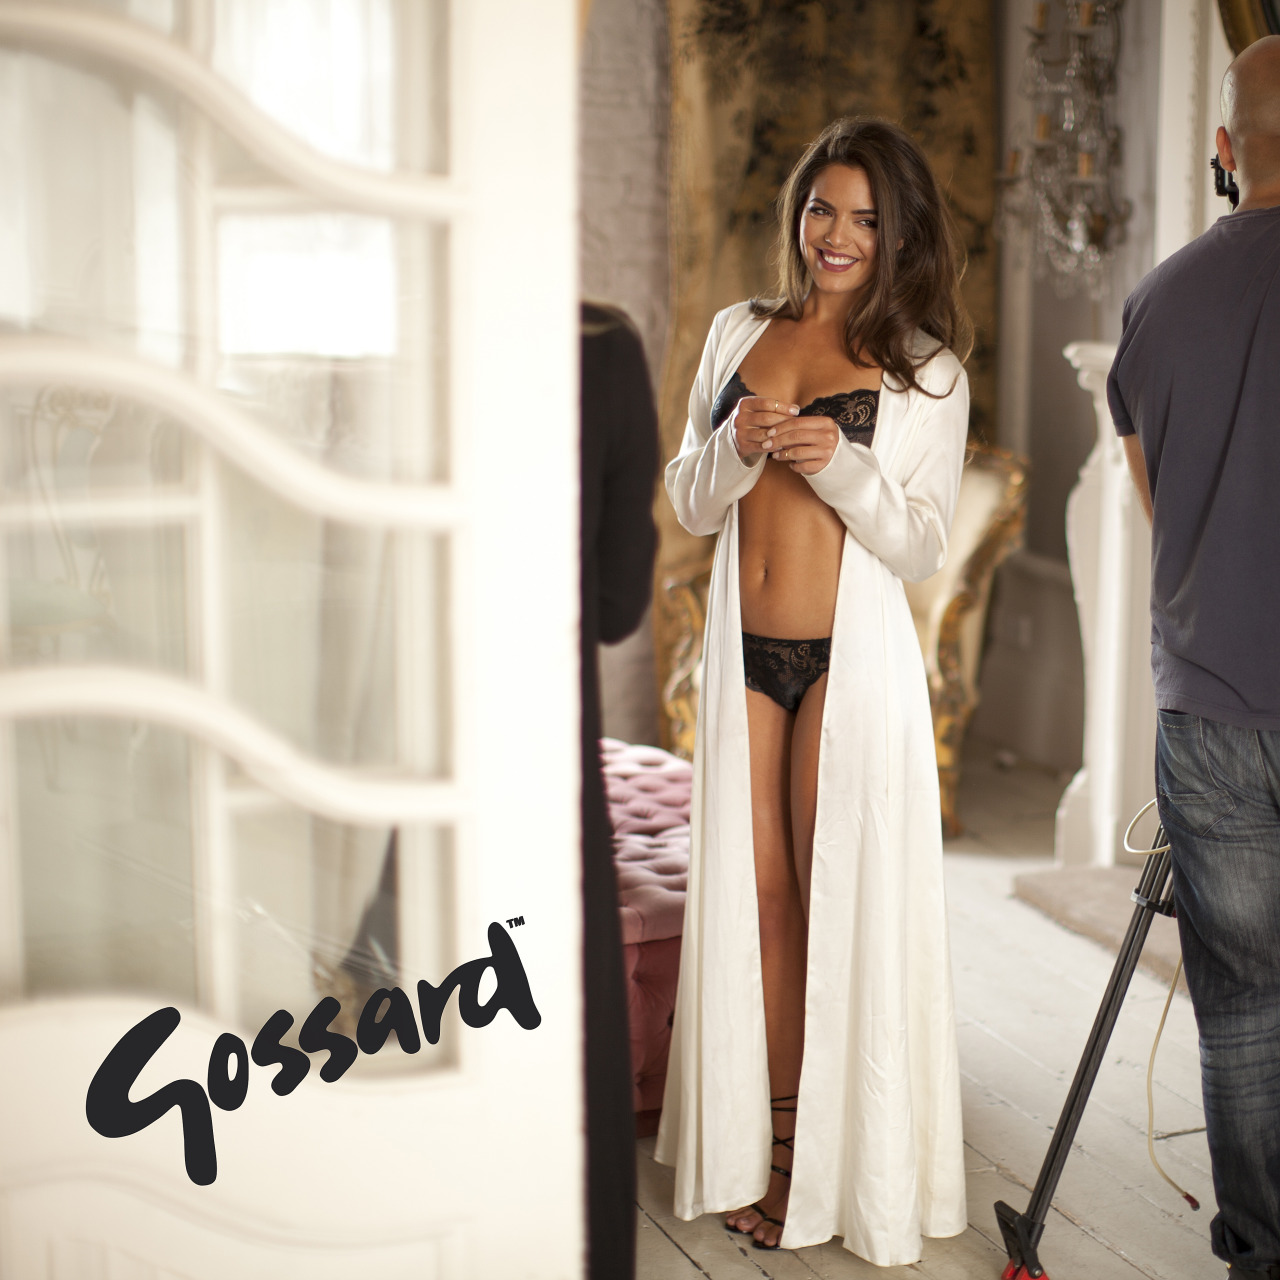 Just shot the new Gossard campaign with stunning actress @OlympiaValance